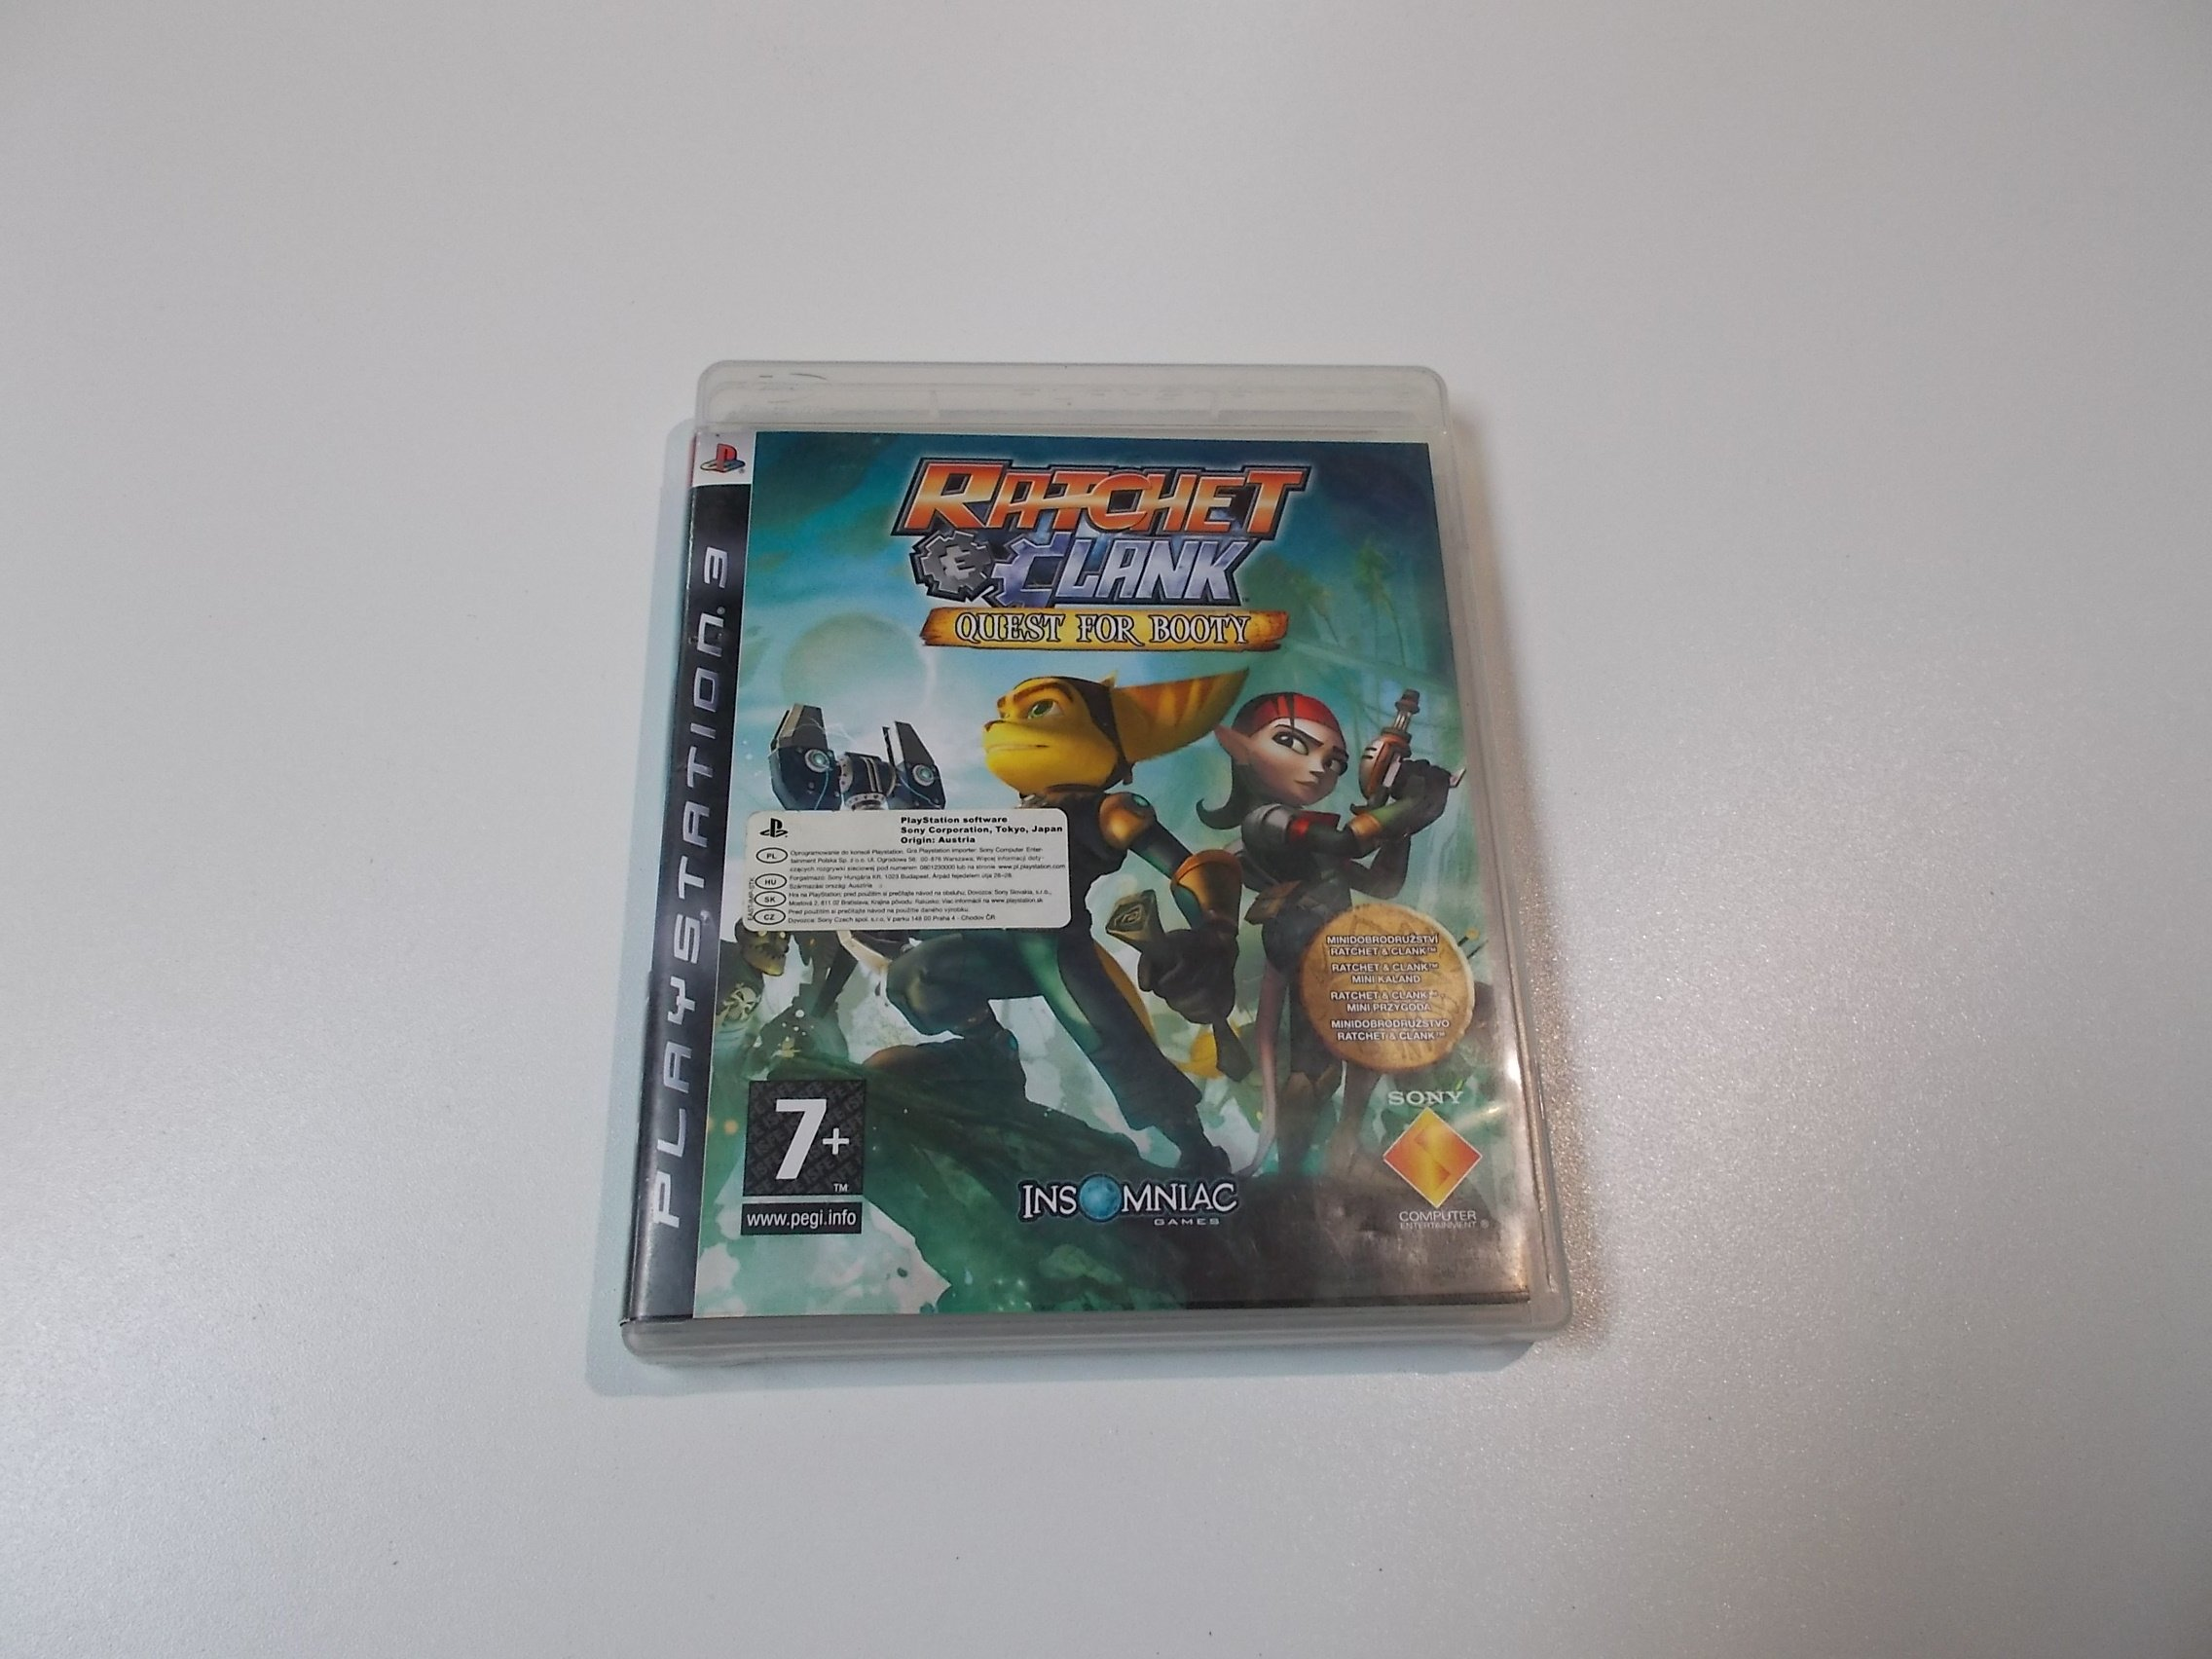 Ratchet & Clank Quest for Booty - GRA Ps3 - Sklep